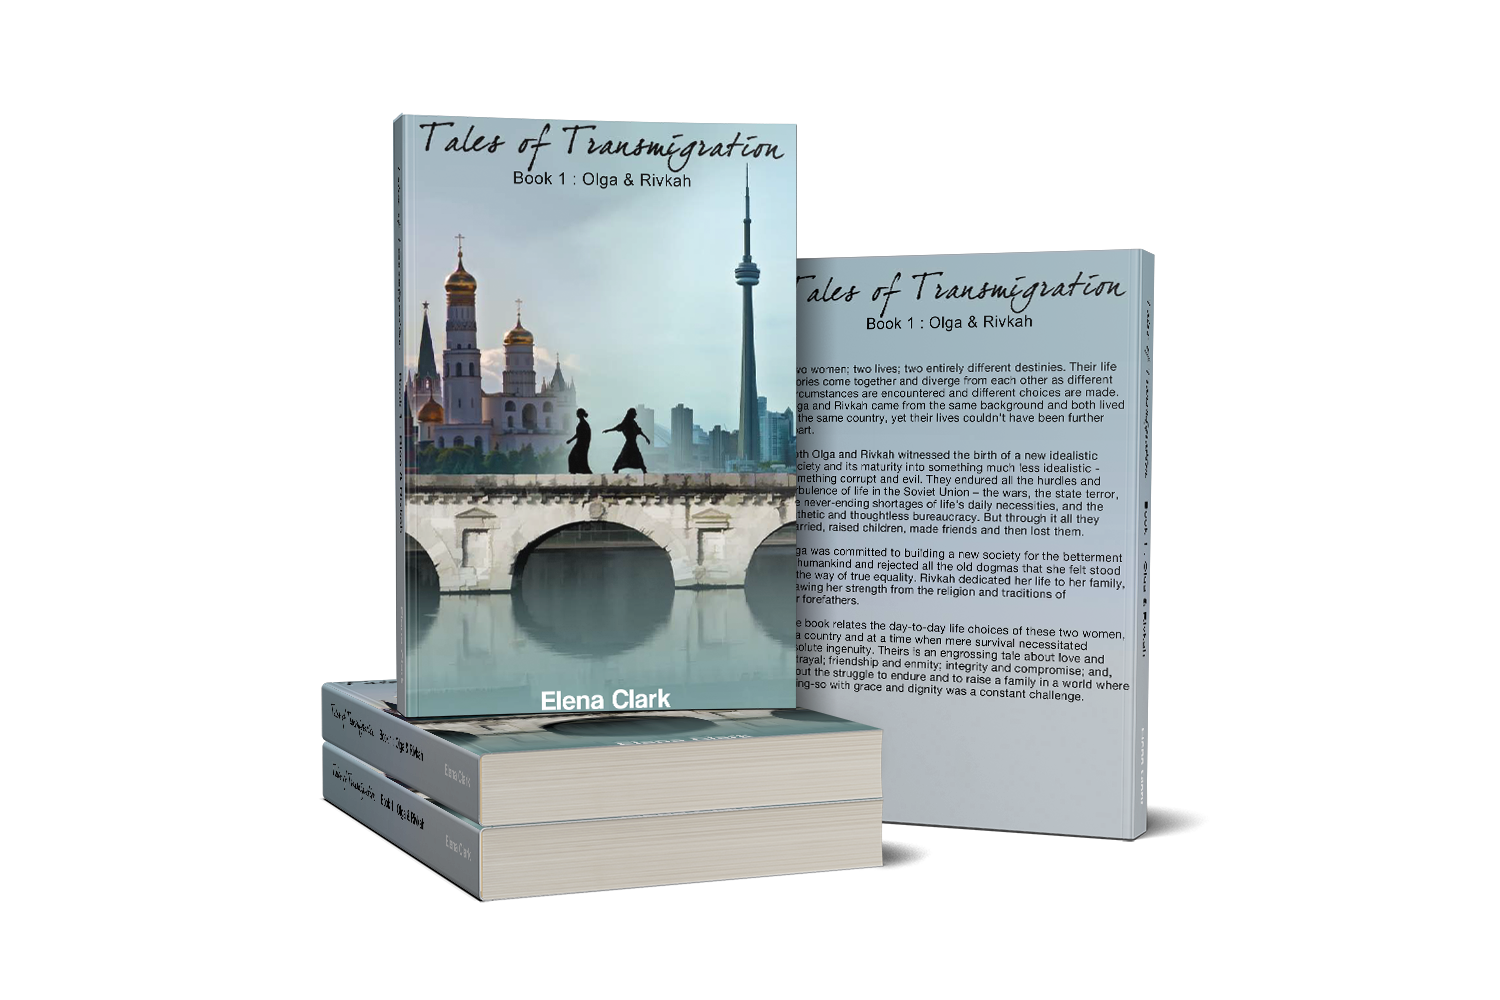 Tales of Transmigration: Olga and Rivkah